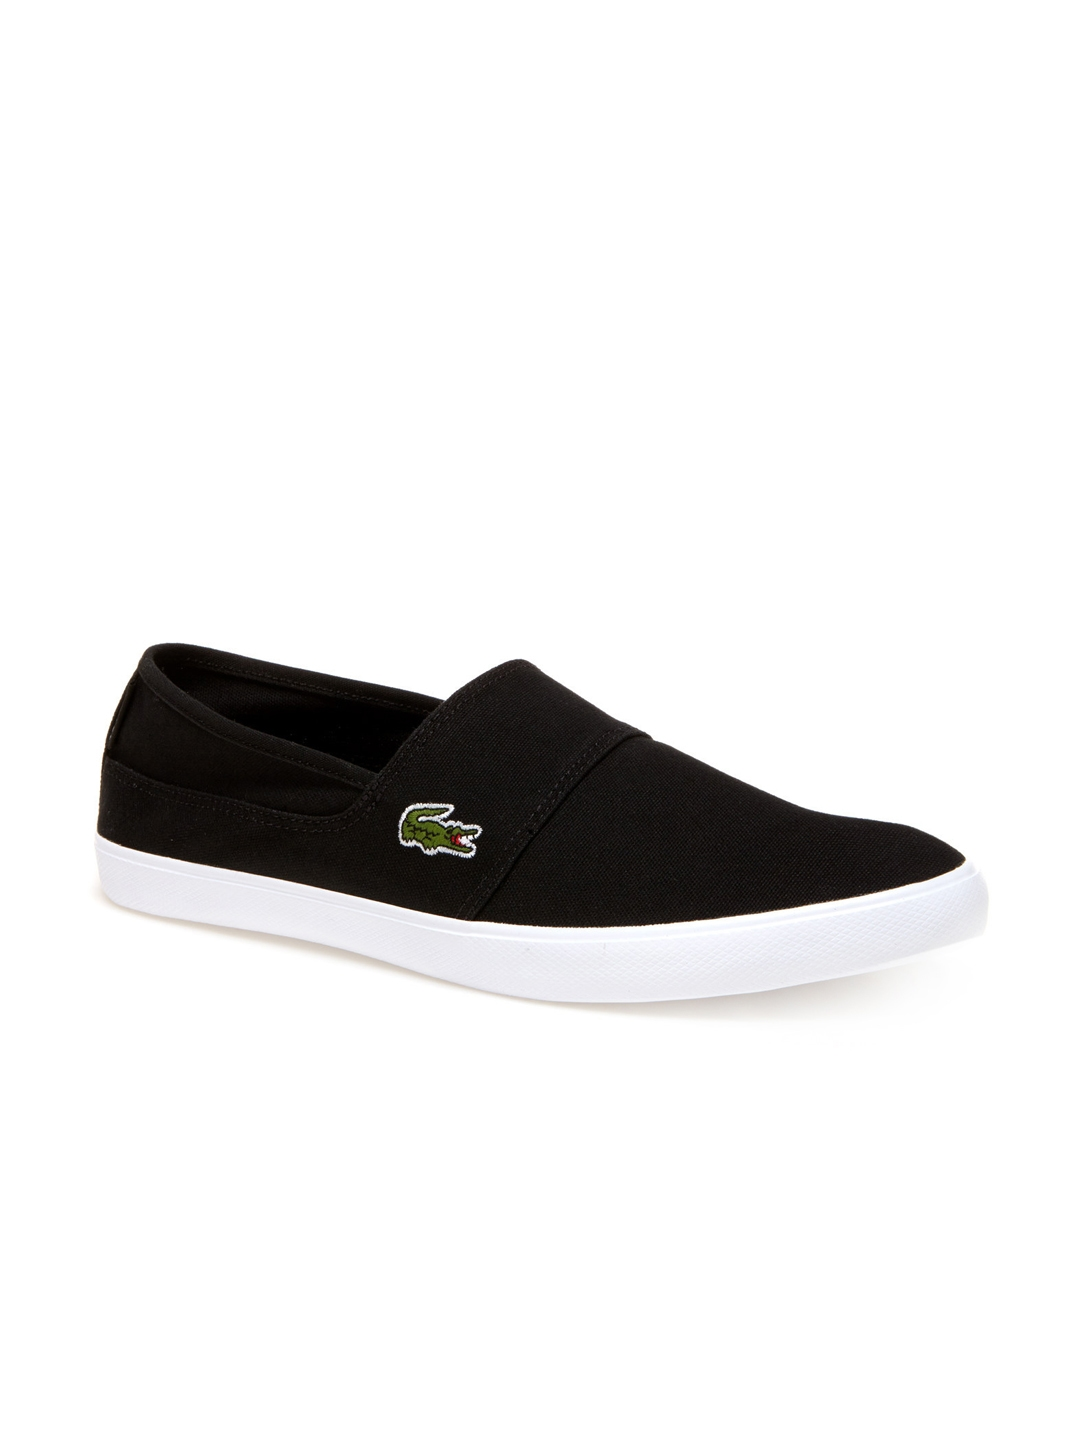 920b9012a Buy Lacoste Men Black Slip On Sneakers - Casual Shoes for Men ...